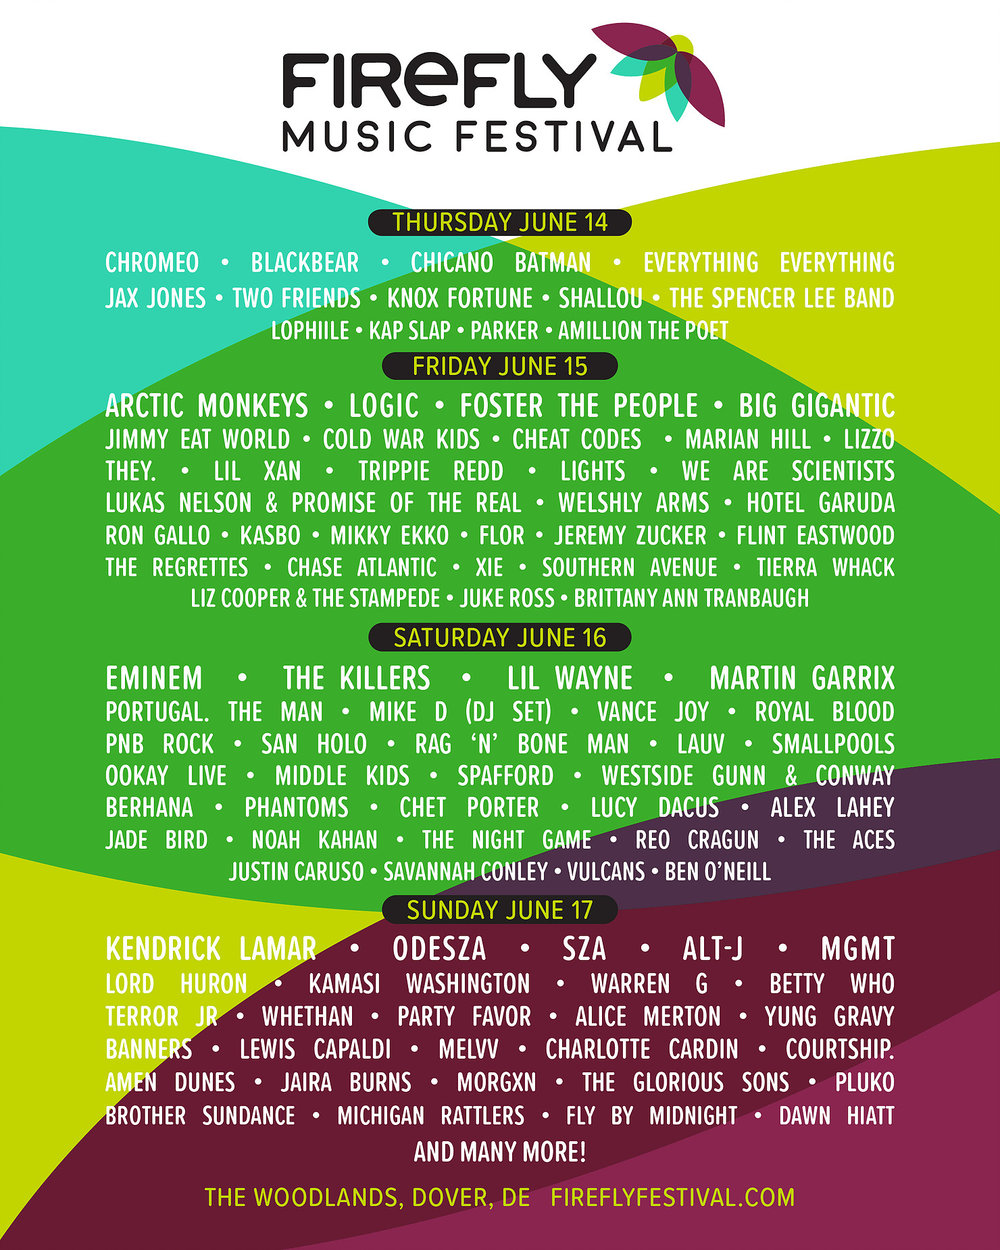 The 2018 Firefly Music Festival Lineup